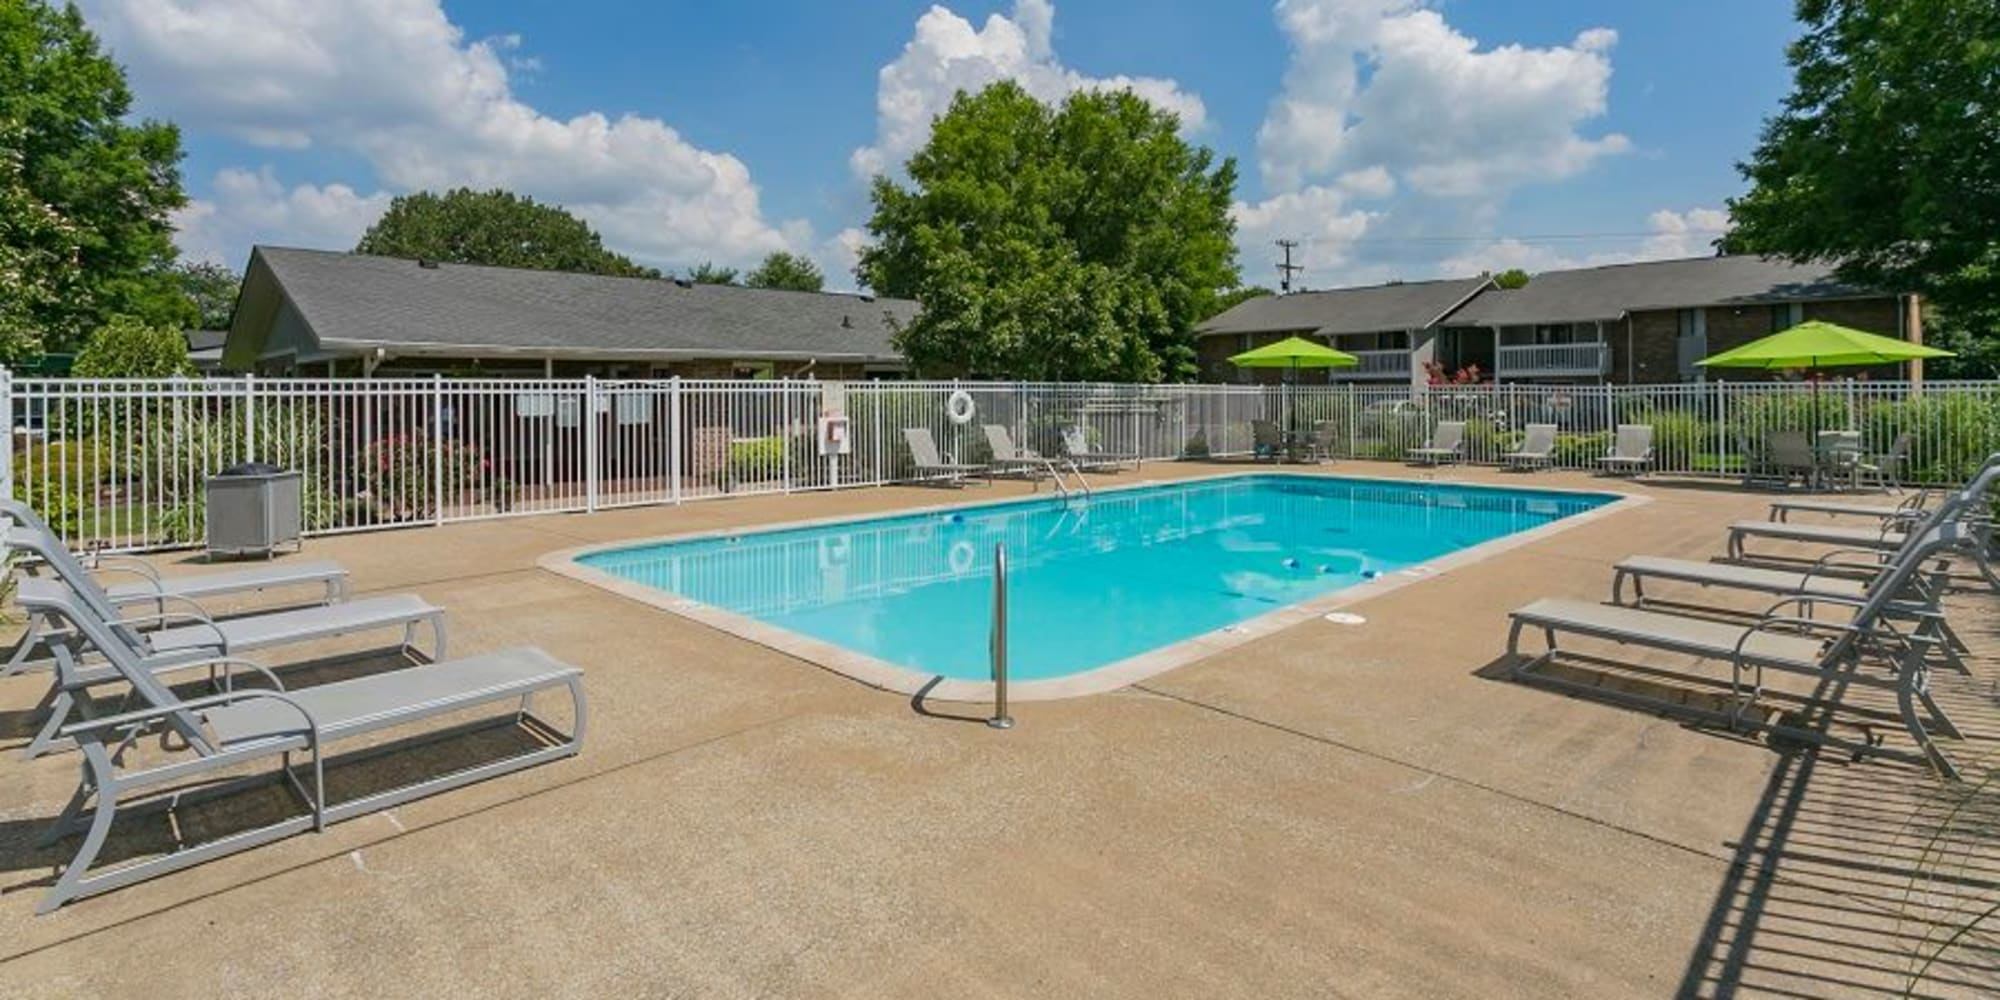 The pool at Magnolia Place Apartments in Franklin, TN